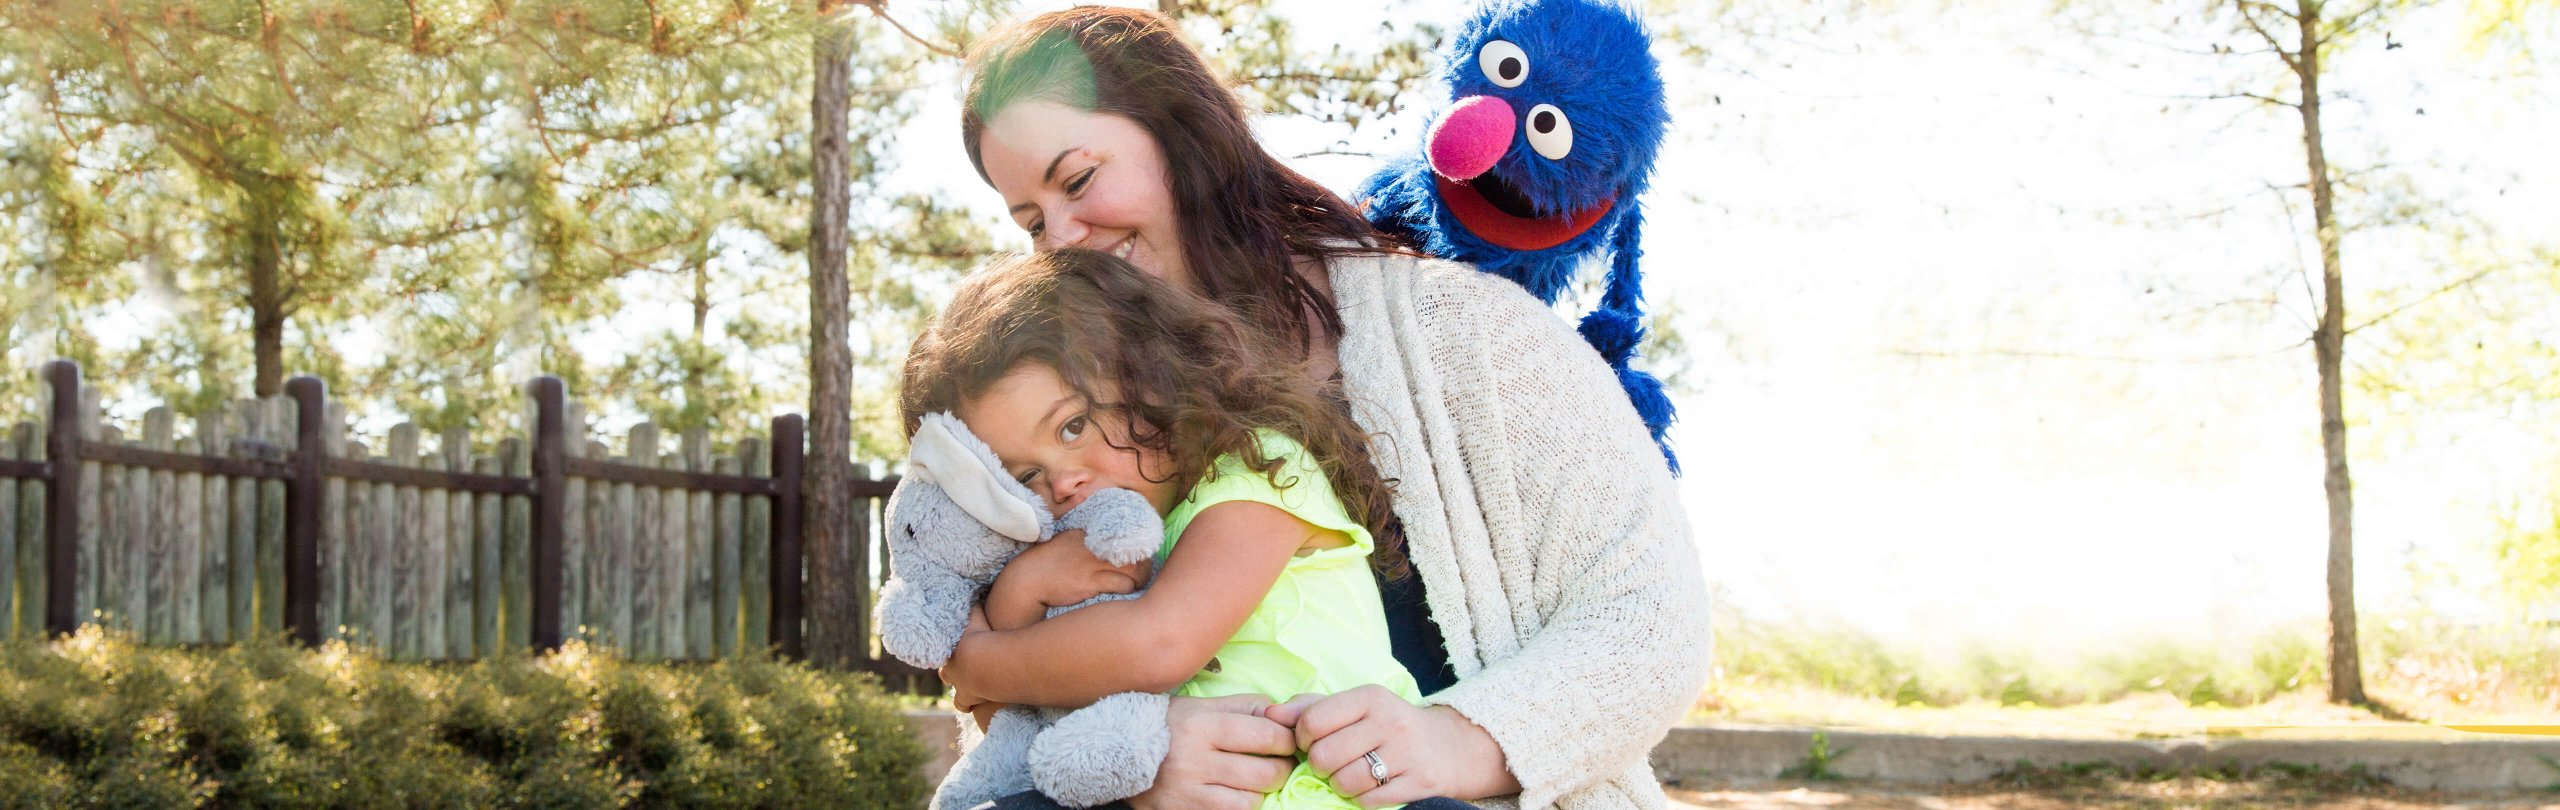 A child hugs a stuffed animal on a woman's lap while Grover smiles at them on a sunny day